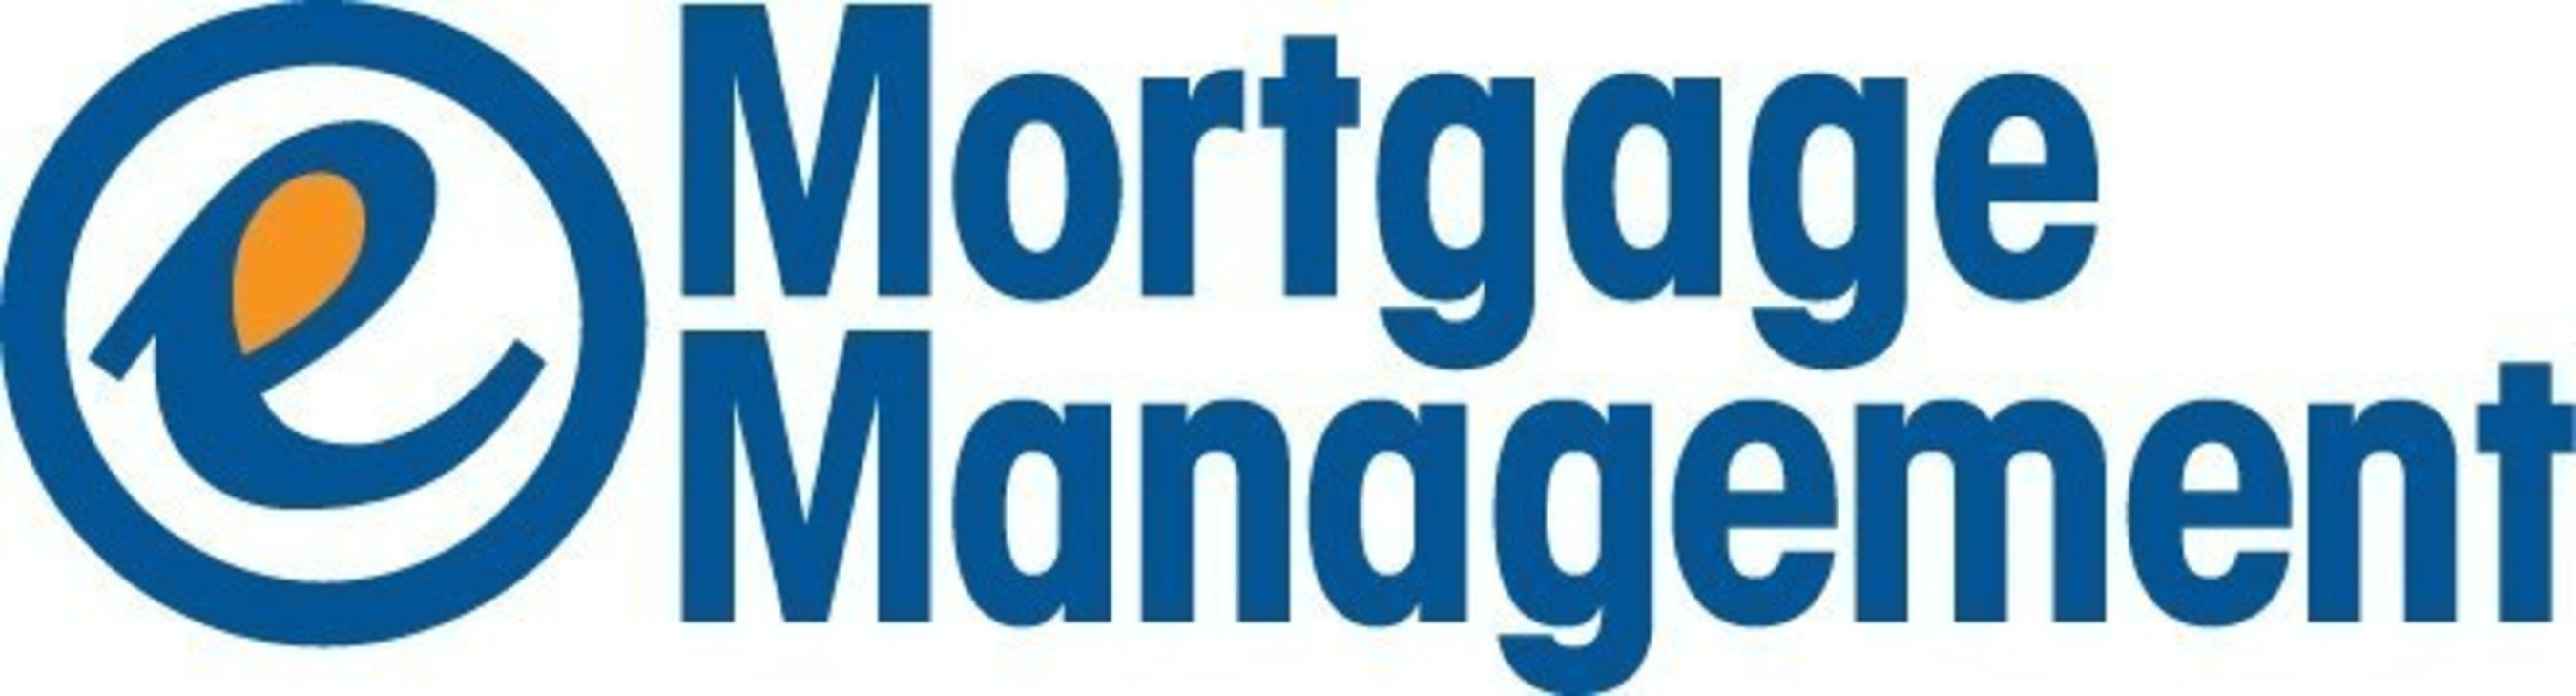 E Mortgage Management & Kevin Crichton Report on Housing Affordability -- a Critical Issue for All